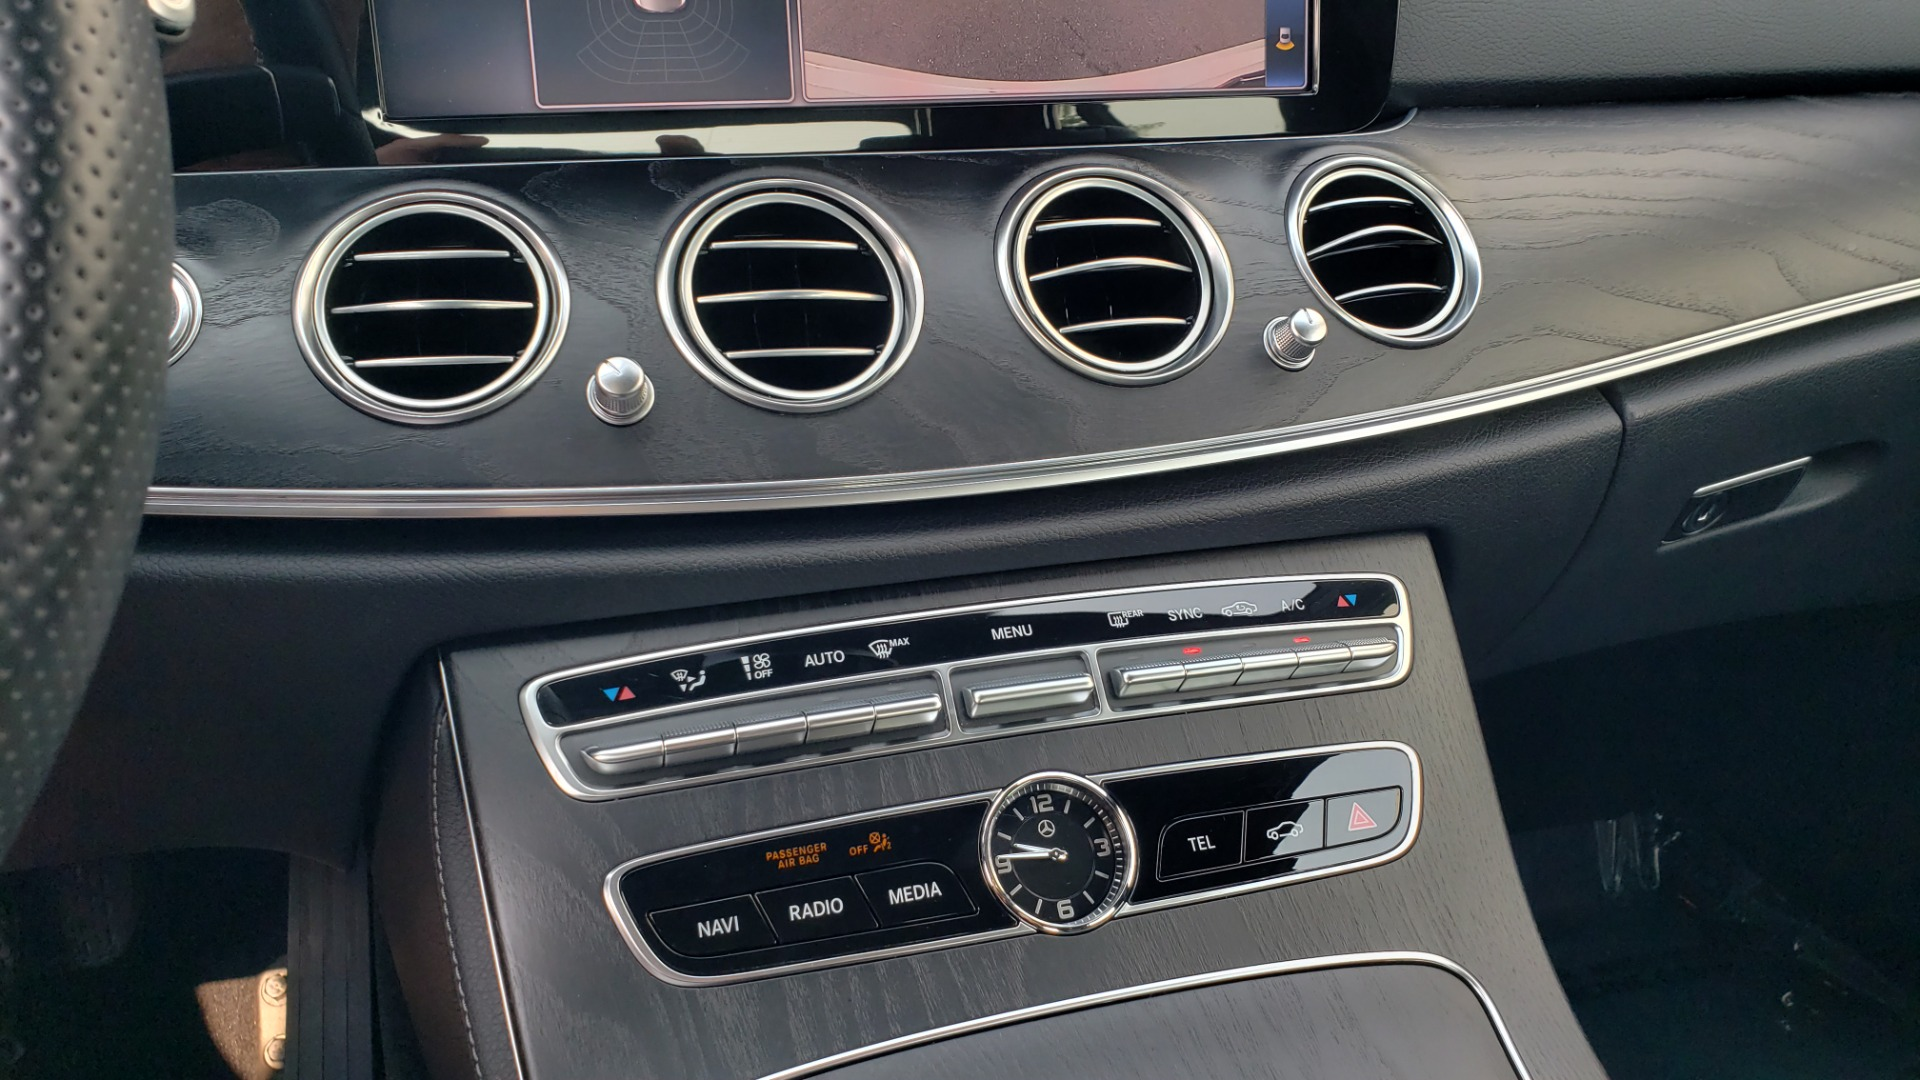 Used 2018 Mercedes-Benz E-CLASS E 300 4MATIC / PREMIUM / NAV / PANO-ROOF / BURMESTER / REARVIEW for sale $41,995 at Formula Imports in Charlotte NC 28227 46